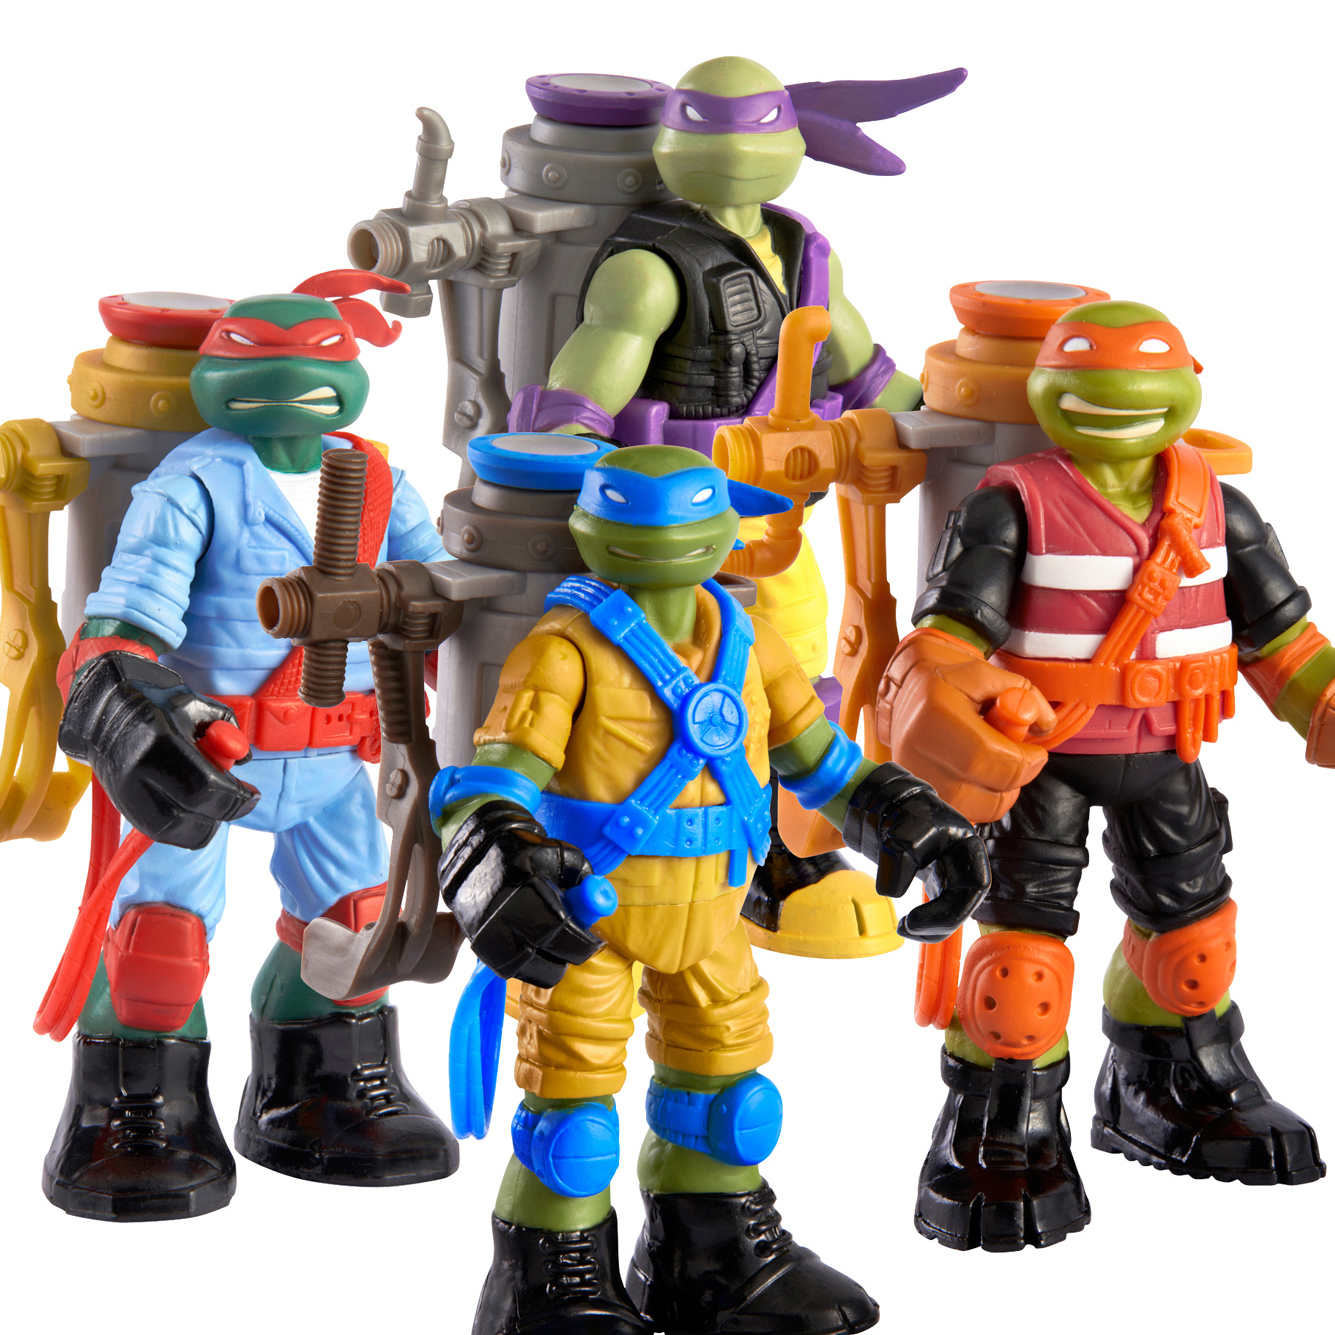 Figure 8 - Teenage Mutant Ninja Turtles (2012)